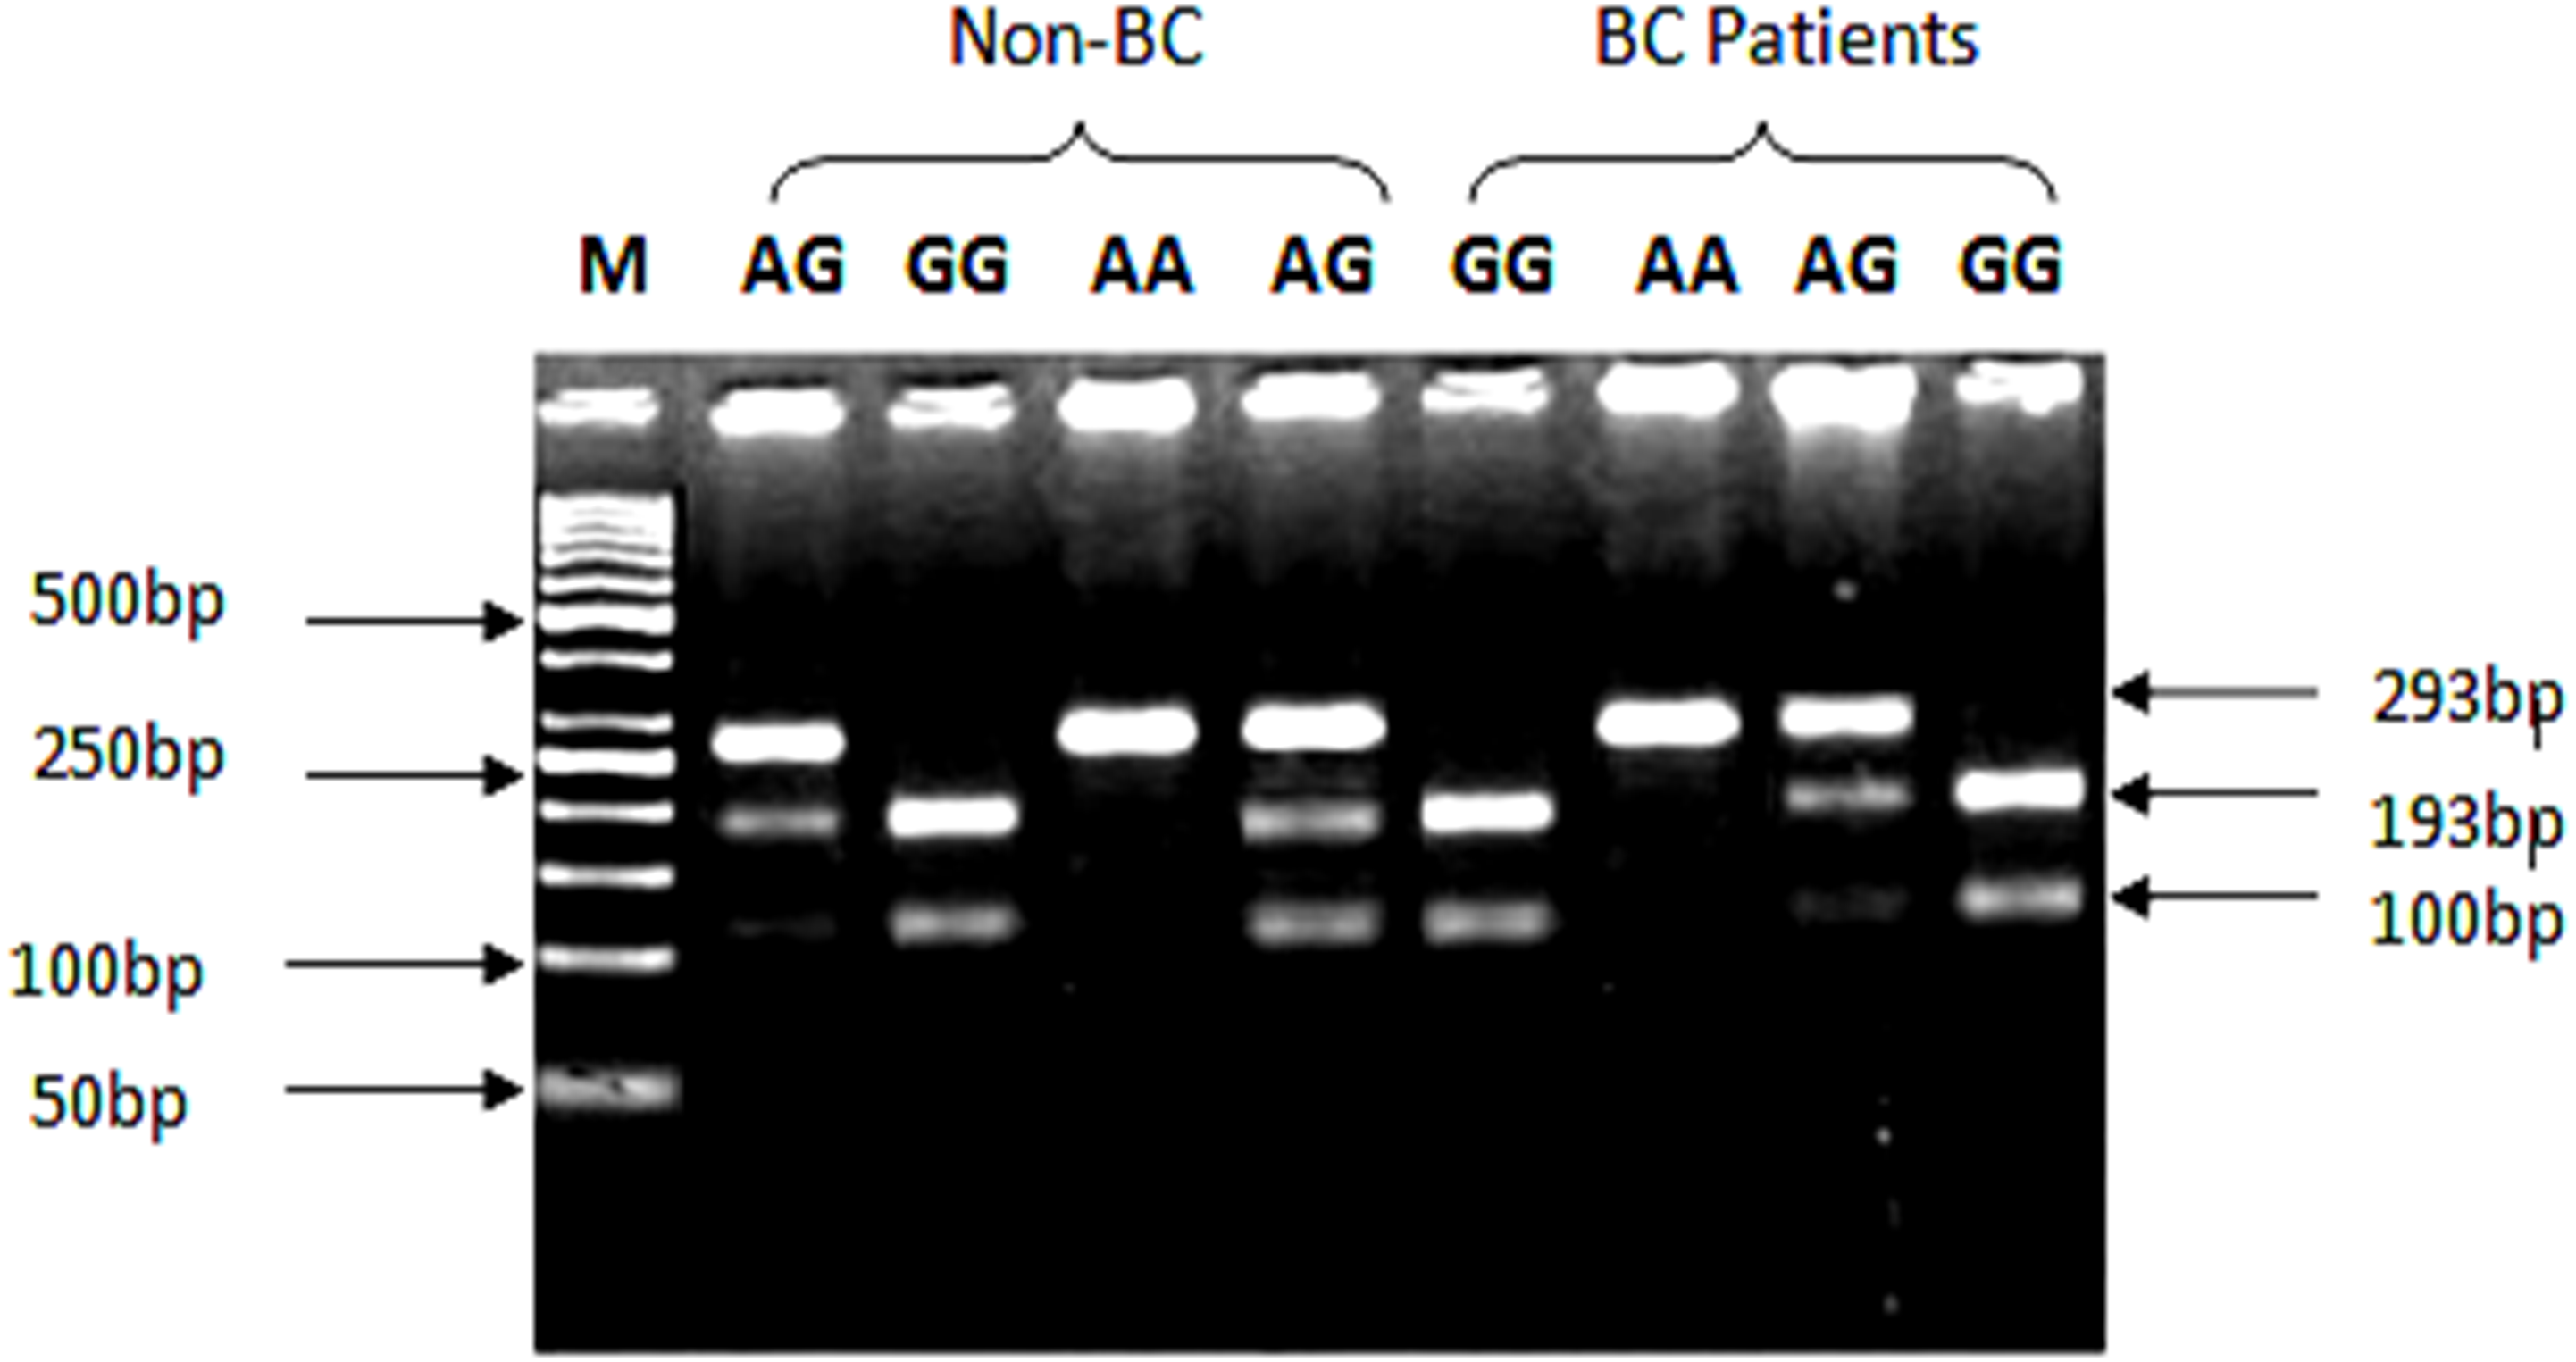 Association of rs1801157 single nucleotide polymorphism of